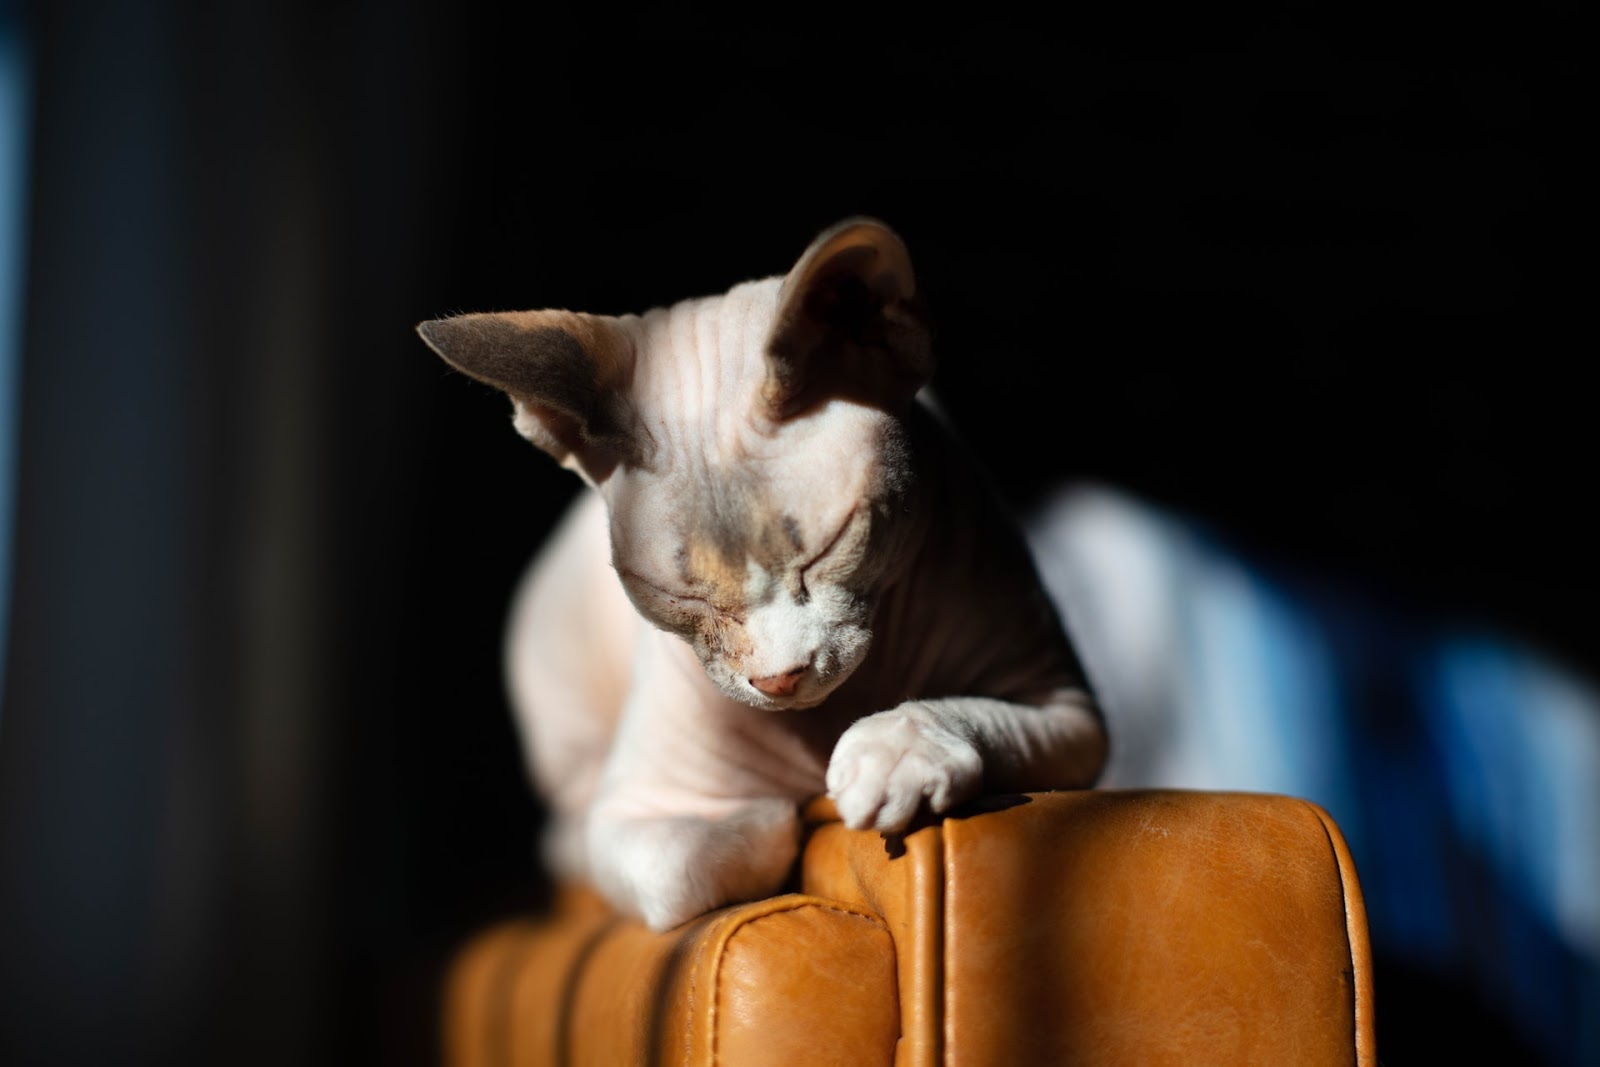 A hairless test rests on the arm of a chair, its eyes closed against the sun.